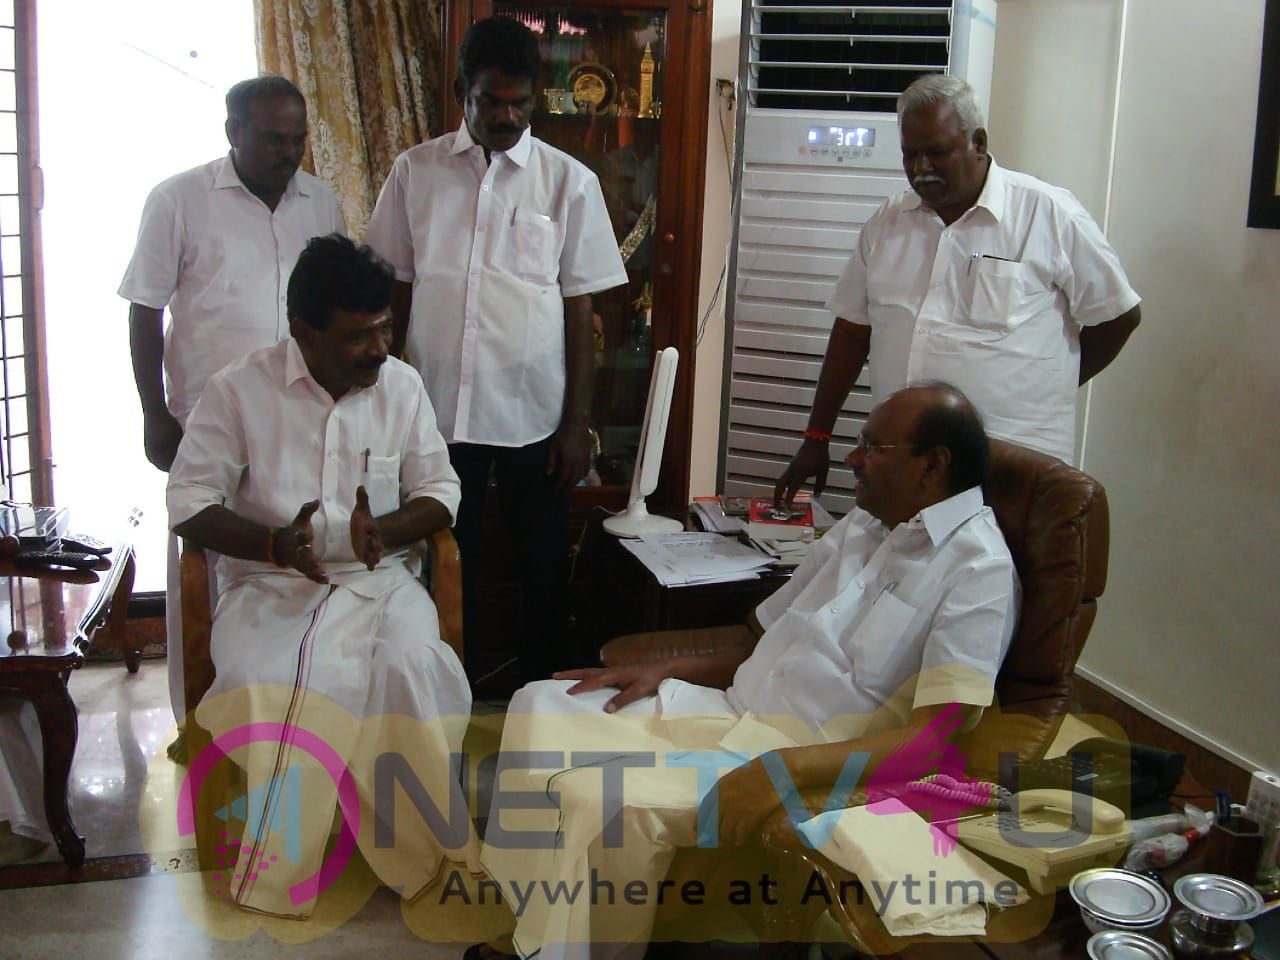 DMDK LK Sudhish & Other Politicians Meet Dr Ramadoss At His Home  Pics